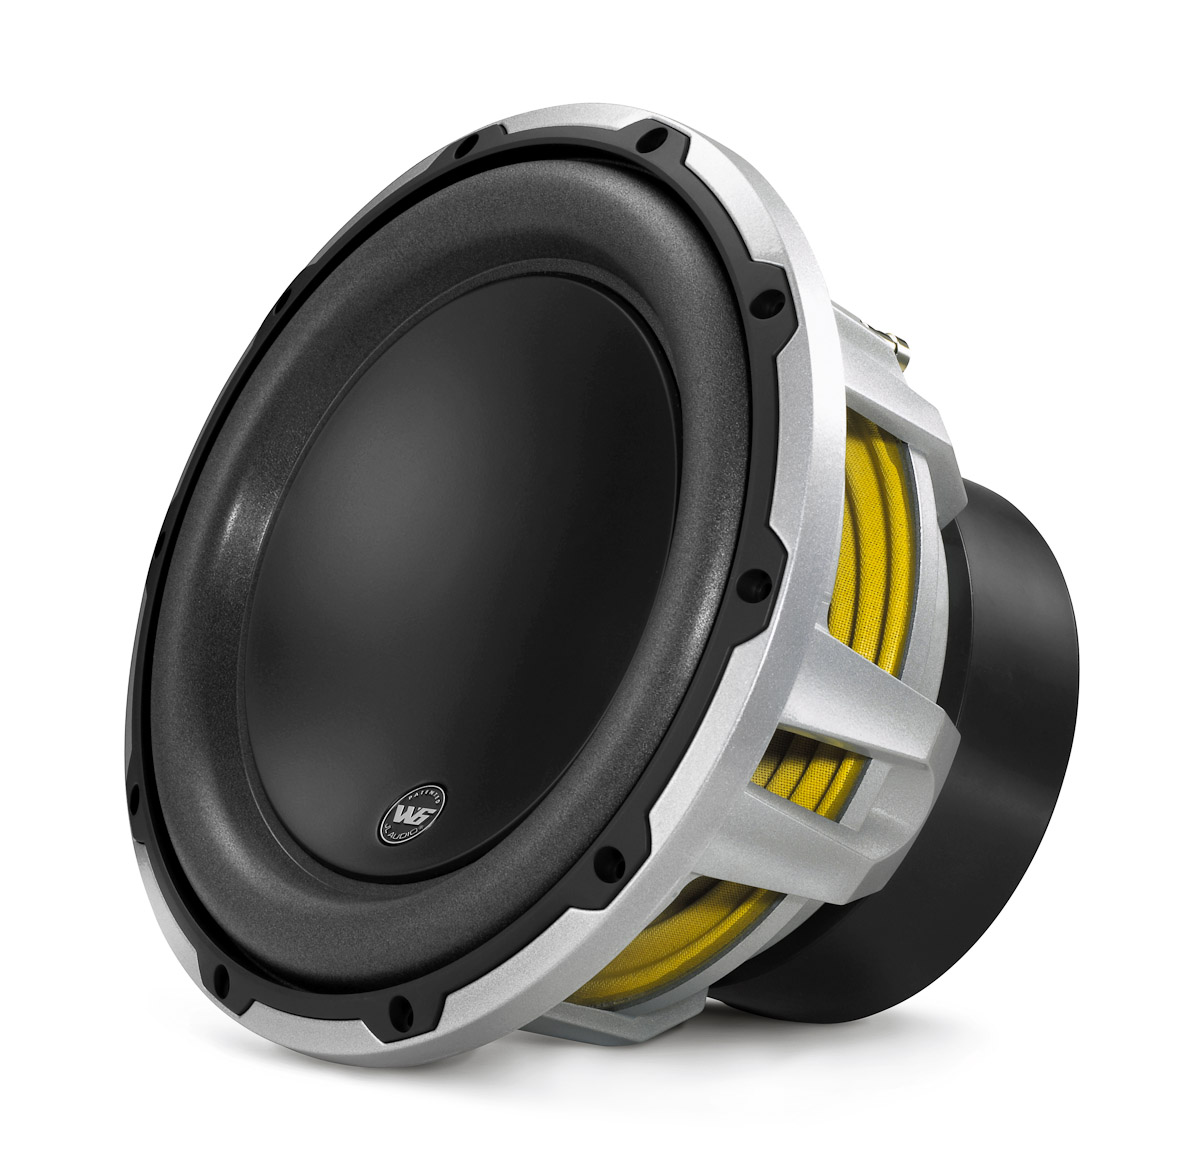 small resolution of 10w6v2 d4 10 inch 250 mm subwoofer driver dual 4